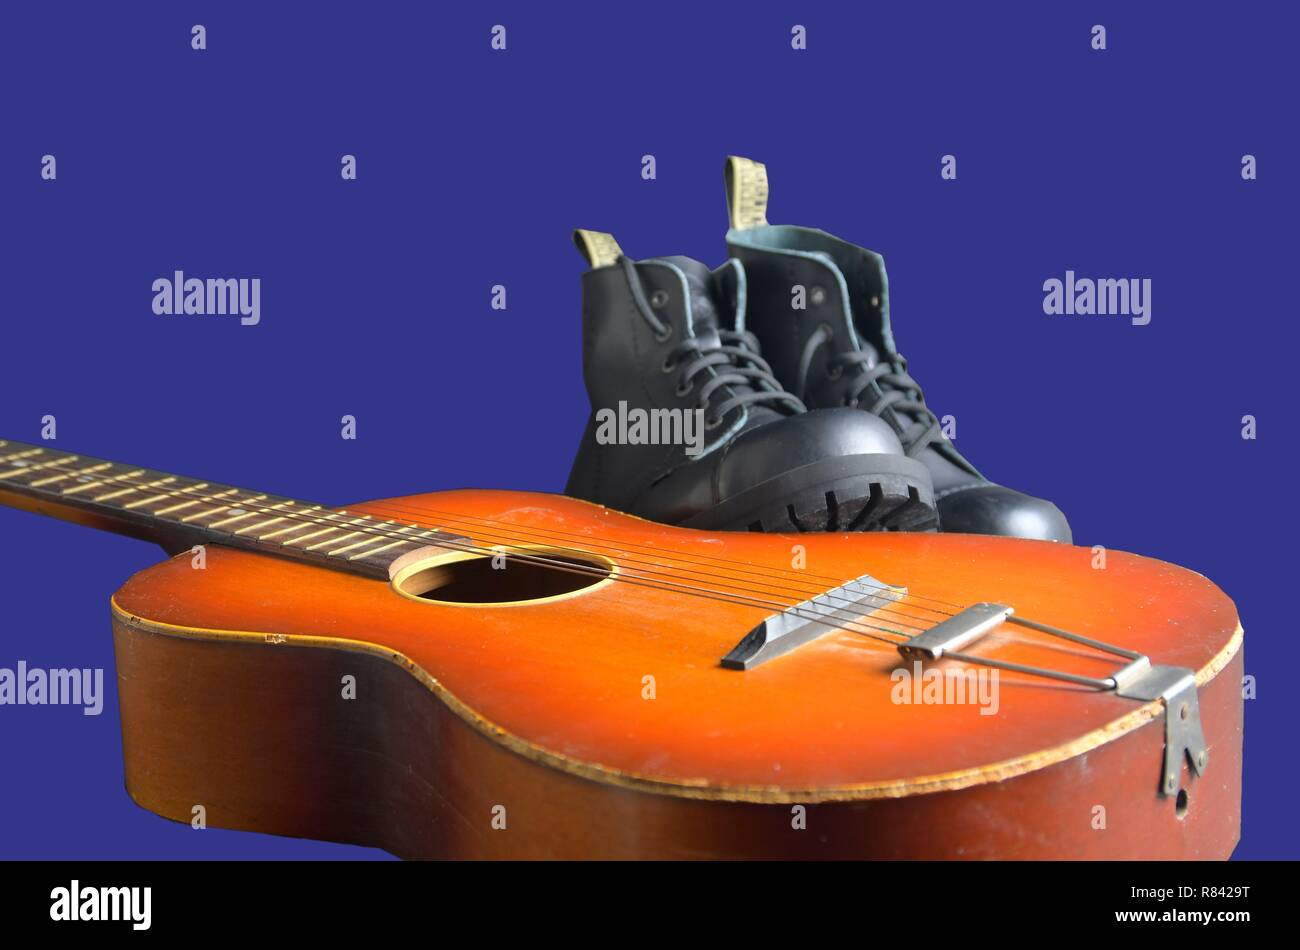 Rock and roll concept. Black boots and acoustic guitar. Rock and roll boots on navy blue background - Stock Image